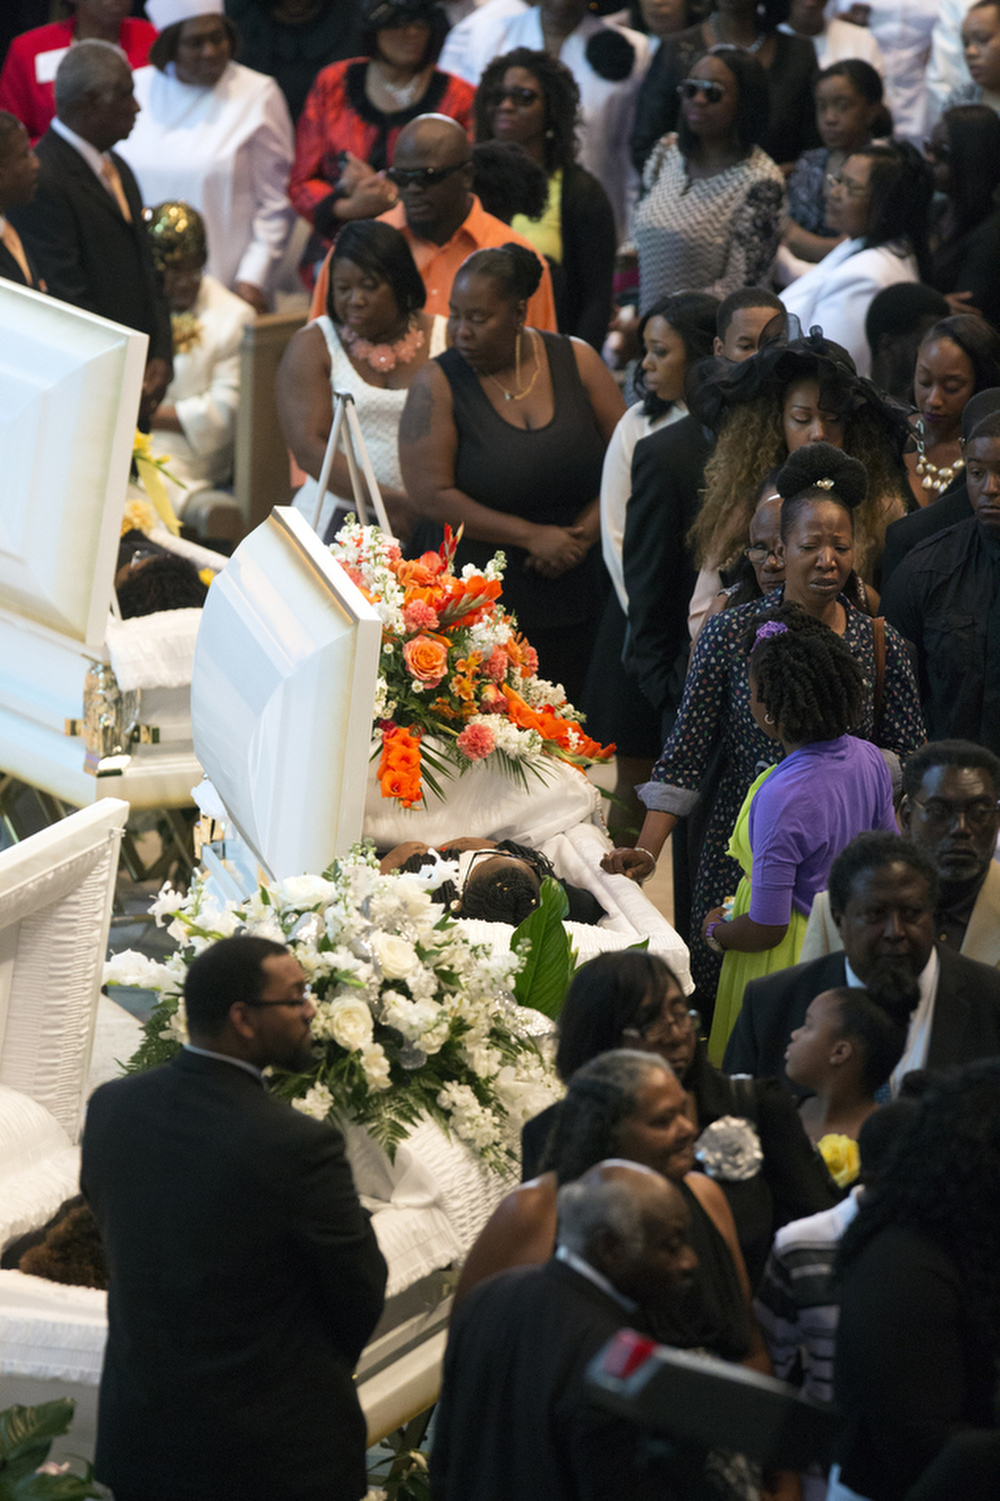 Mourners view the caskets at the funeral of sisters LaMour, 29, India, 24, and Tehira Welch, 18, at First Baptist of St. Petersburg on Saturday August 15, 2015. The three Welch sisters died in a car accident last Sunday, on the way home from a religious convention in Fort Pierce.